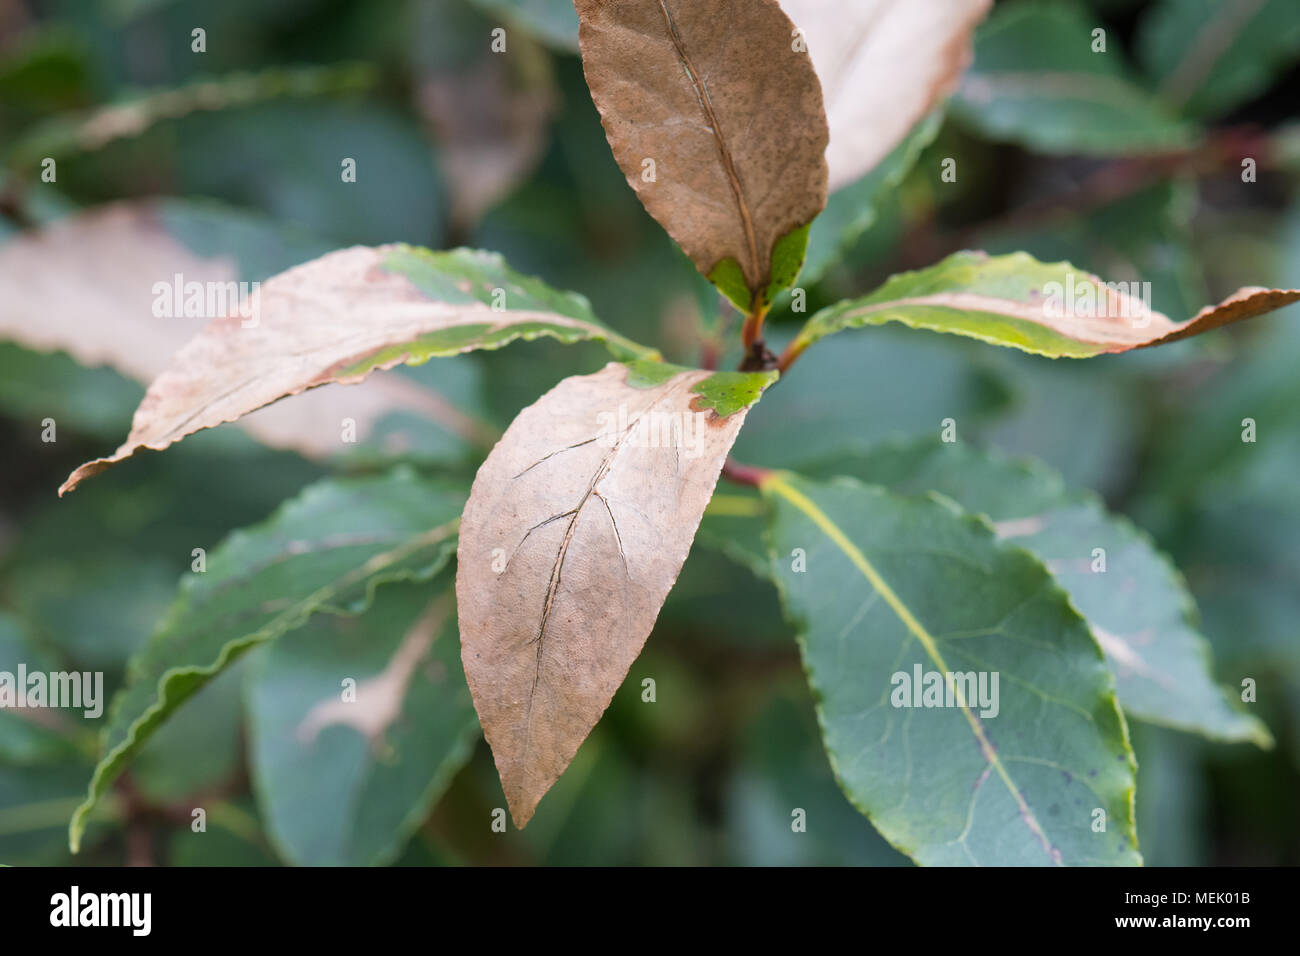 bay leaf - Bay Laurel (Laurus nobilis) plant with frost cold weather damage to leaves in uk garden - Stock Image